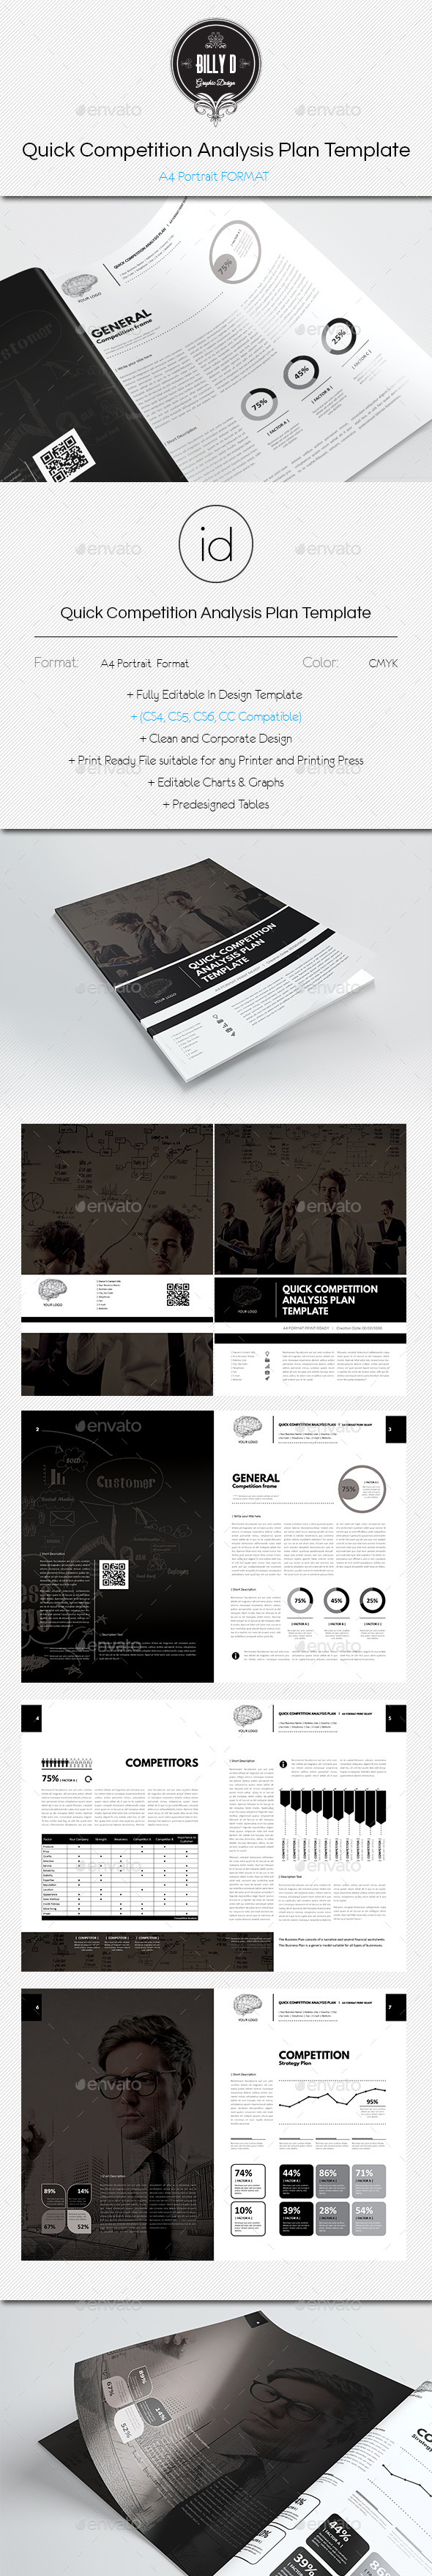 GraphicRiver Quick Competition Analysis Plan Template 10269212